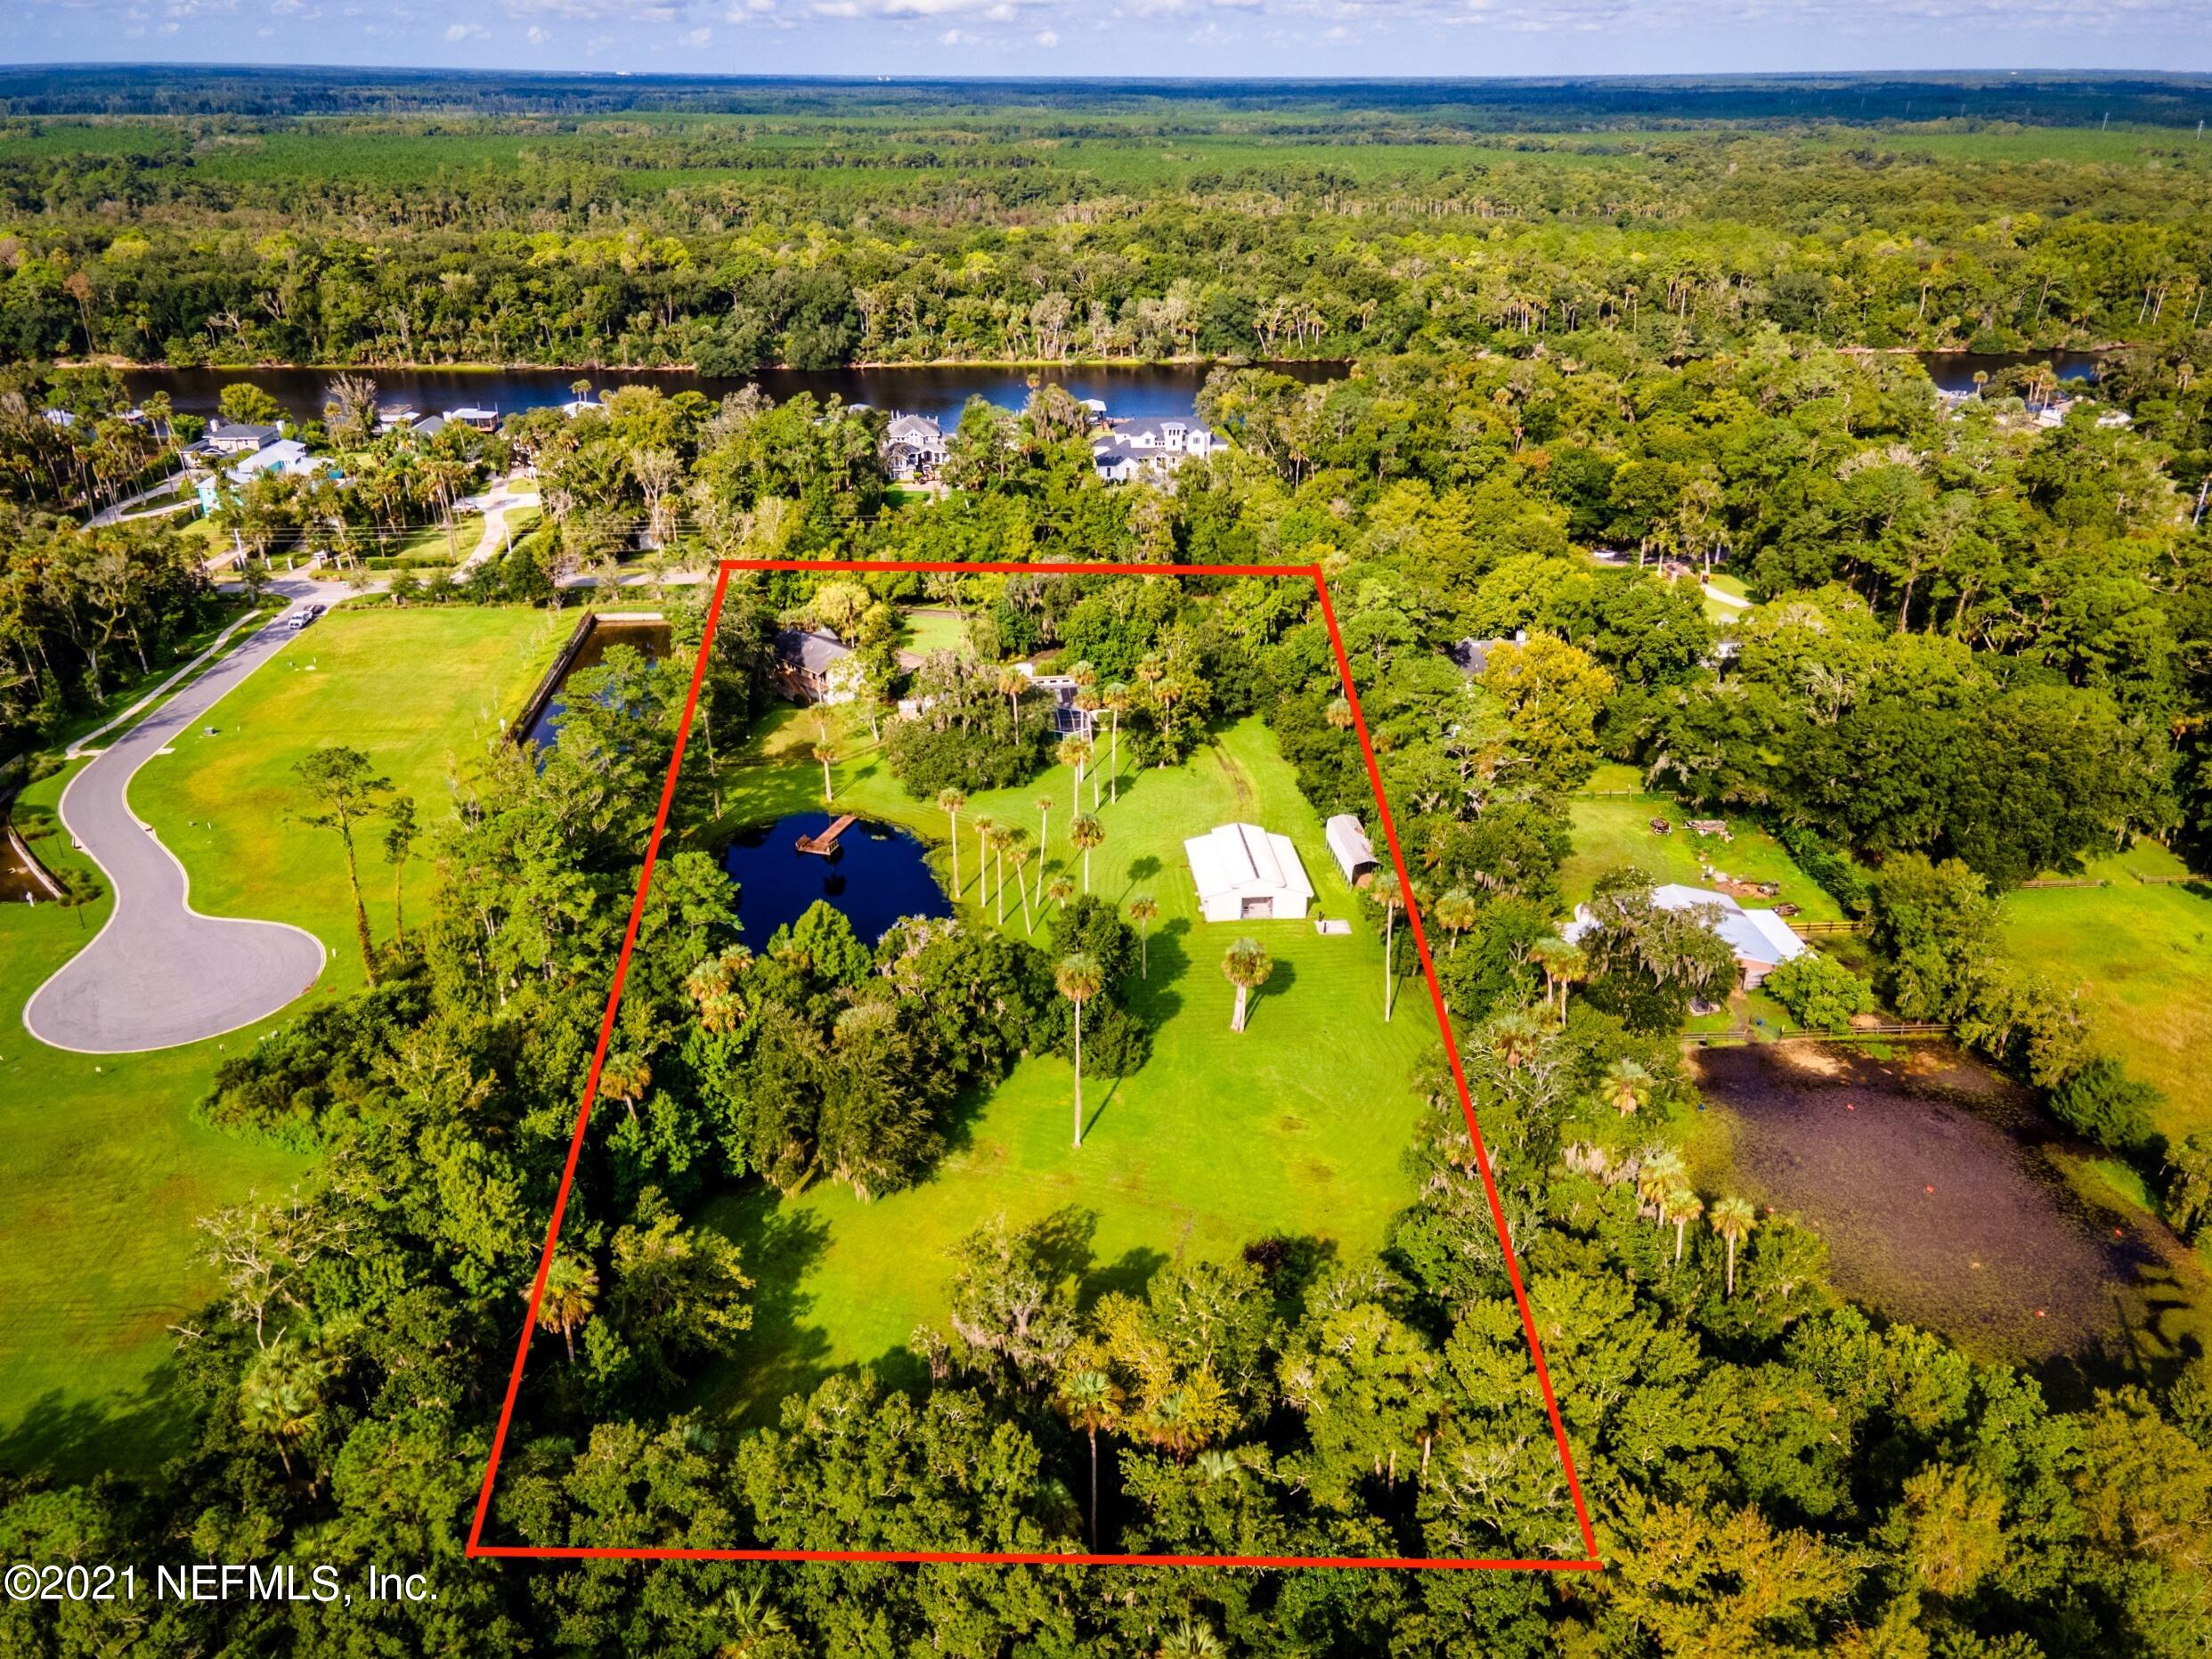 Rare 5 usable acres on Roscoe Blvd consisting of two separate deeded parcels. Beautiful property which can be developed into 4-6 lot community, a multi-family home estate or perhaps a horse lovers dream estate located just minutes from Ponte Vedra Beach. The northernmost parcel consists of four acres with a 2556 sf home with 2 bedrooms & 2 full baths plus pool. The southernmost is a one acre parcel with a 2450 sf home built in 2000, consisting of 4 bedrooms & 2 baths. Prior owner loved horse & their family constructed two homes and in the middle north portion of this property lies a barn with 3 stalls but can accommodate up to 6 horse stalls. There is a pond positioned on the southern side of the parcel.  Property is also gated.